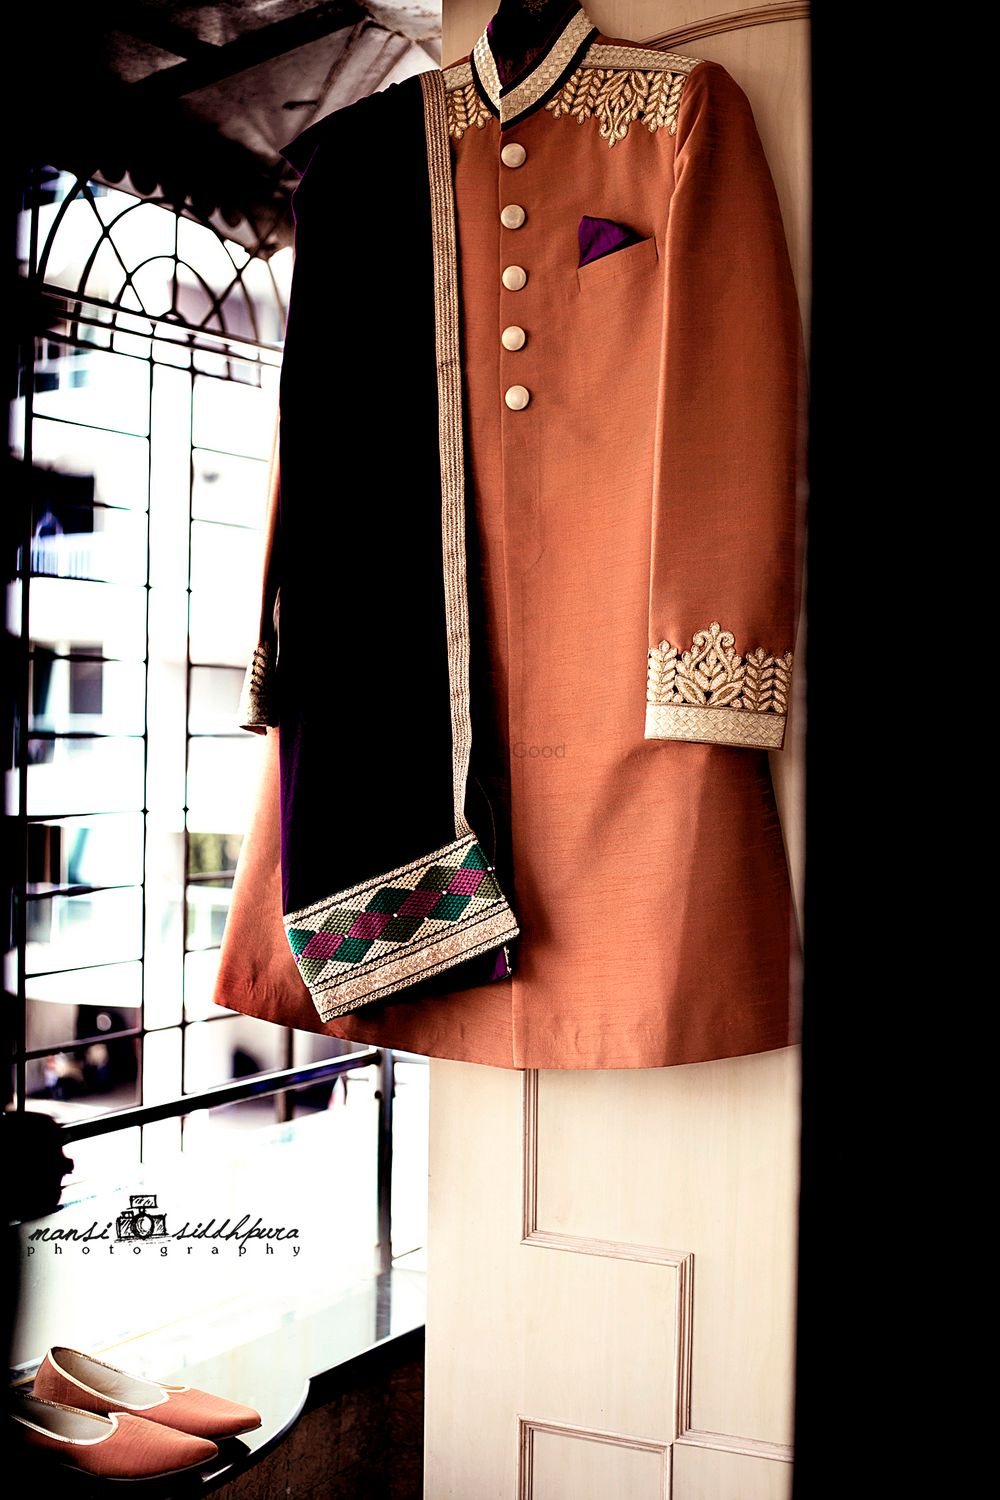 Photo of Brown Sherwani on Hanger with Black Shawl